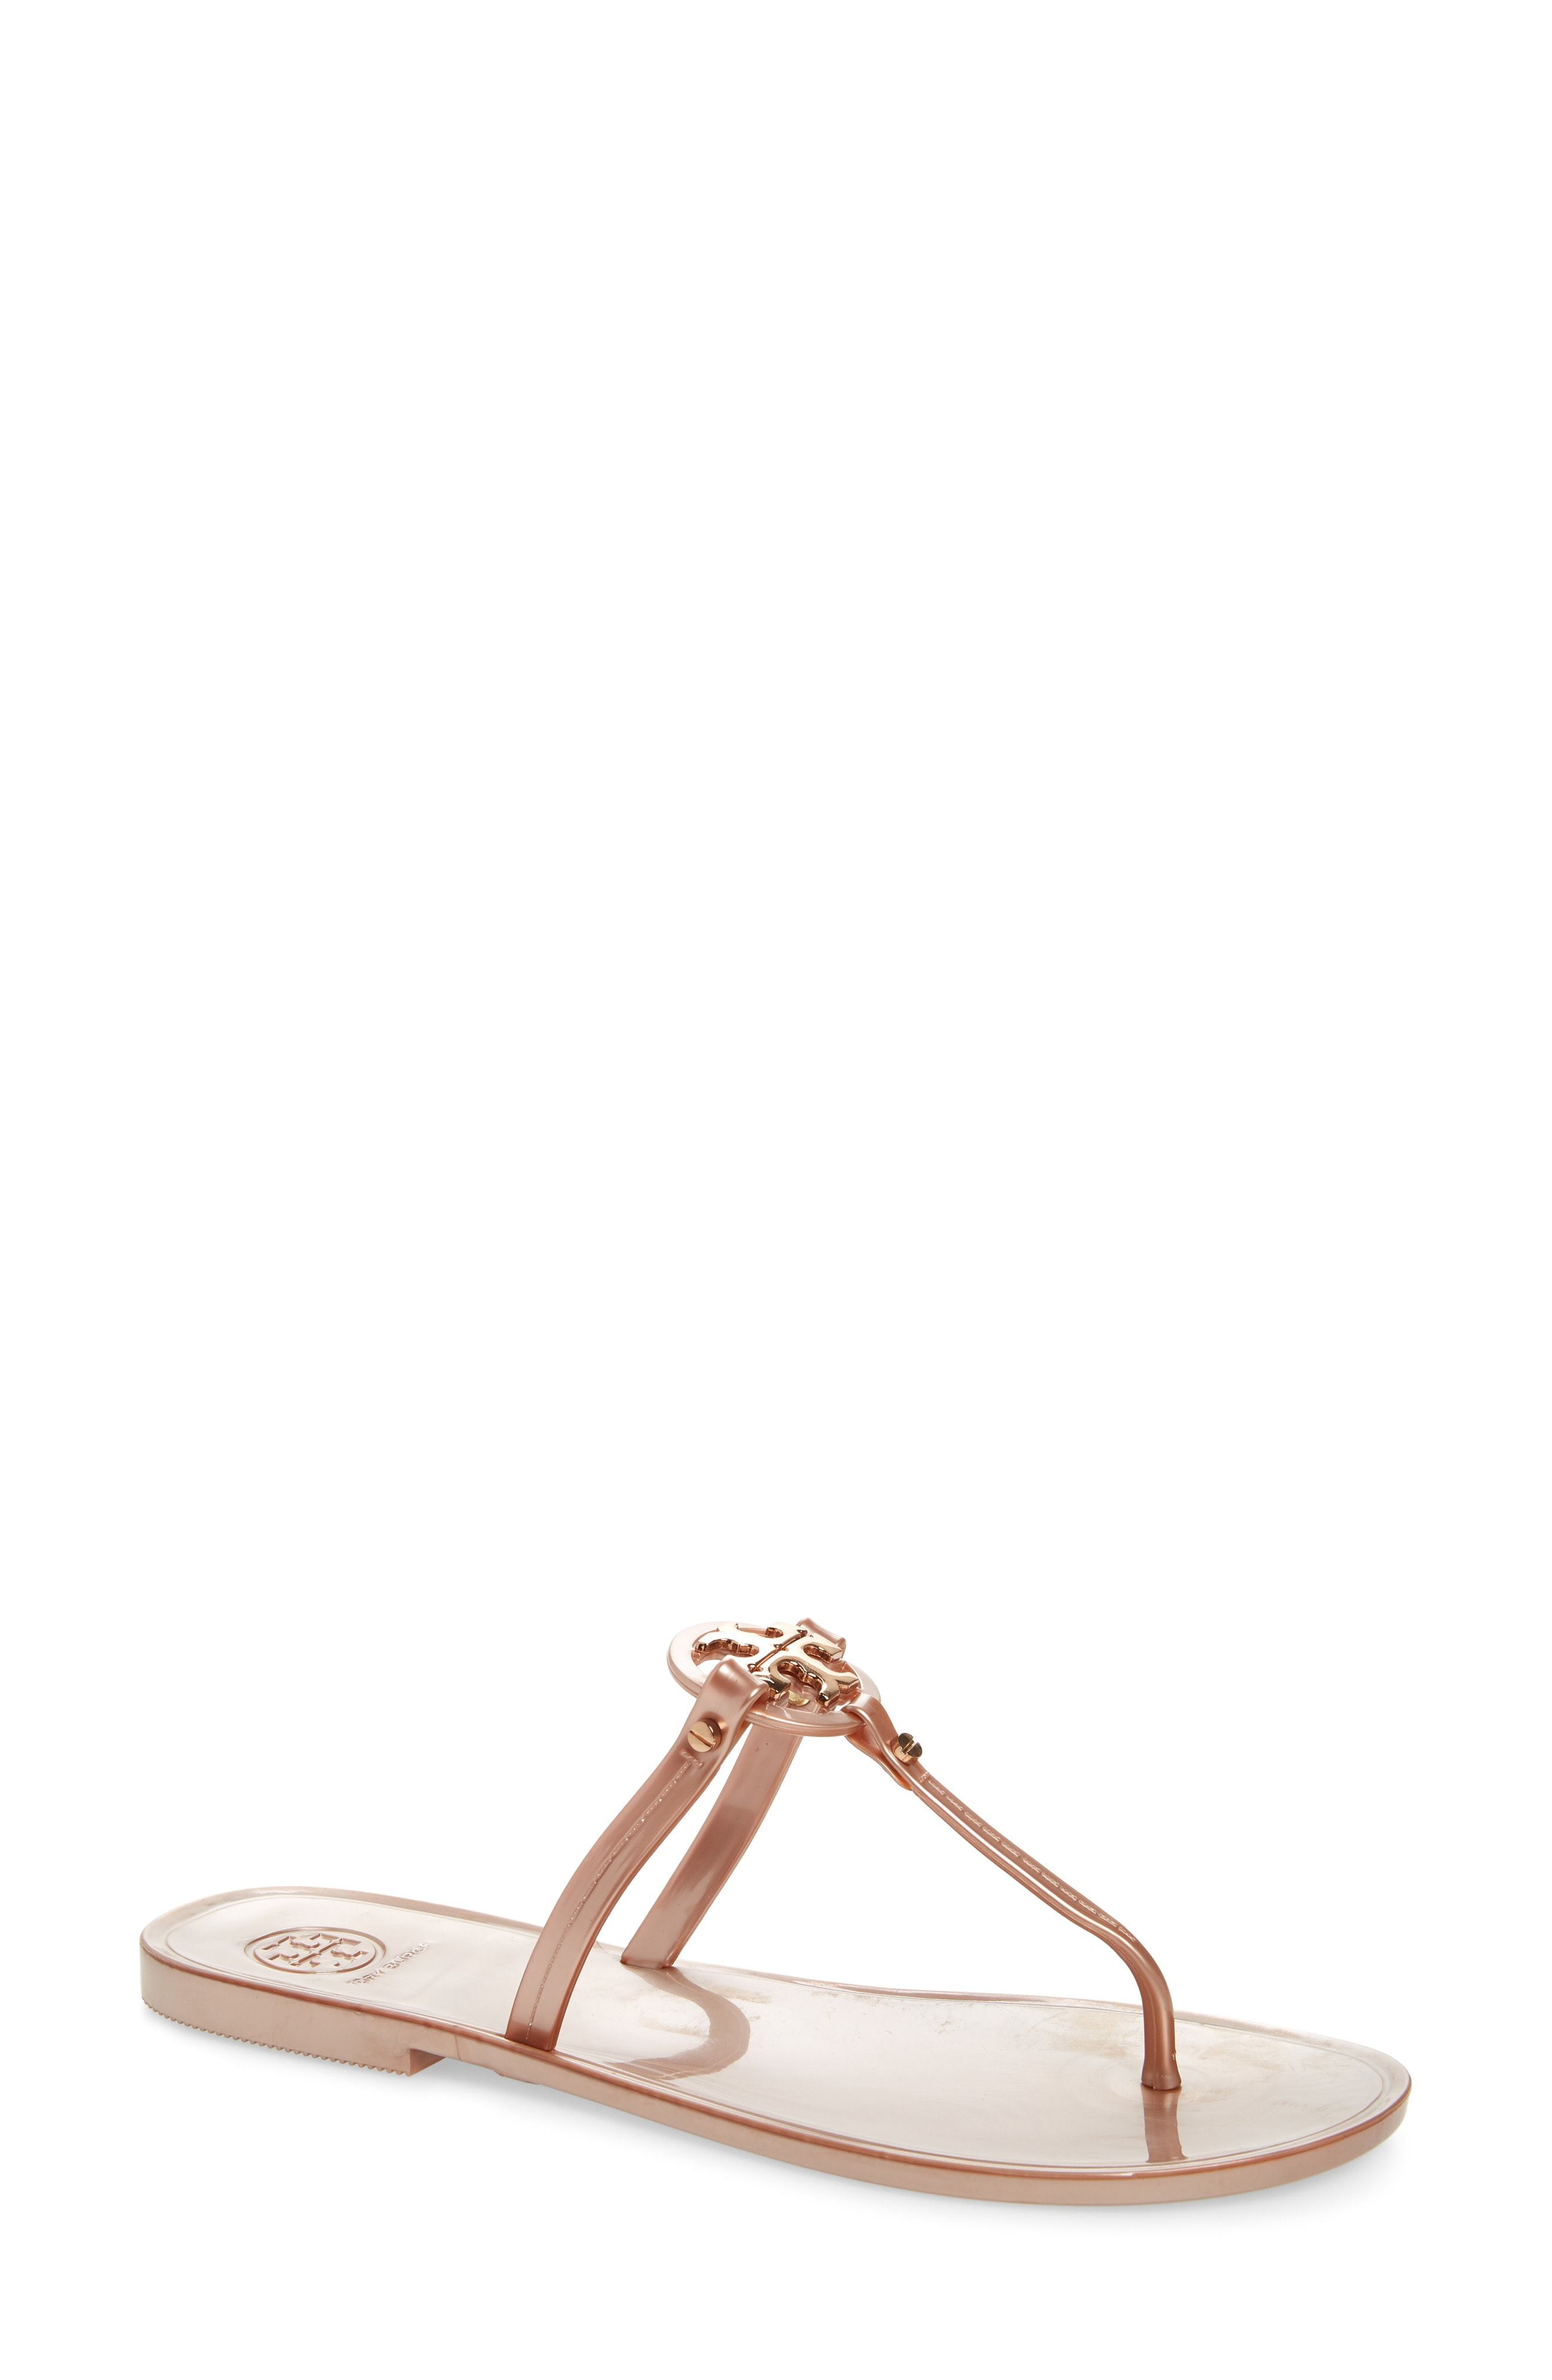 5f3ef46be8be Mini Miller Flat Sandal. Pink Thong Sandals by Tory Burch